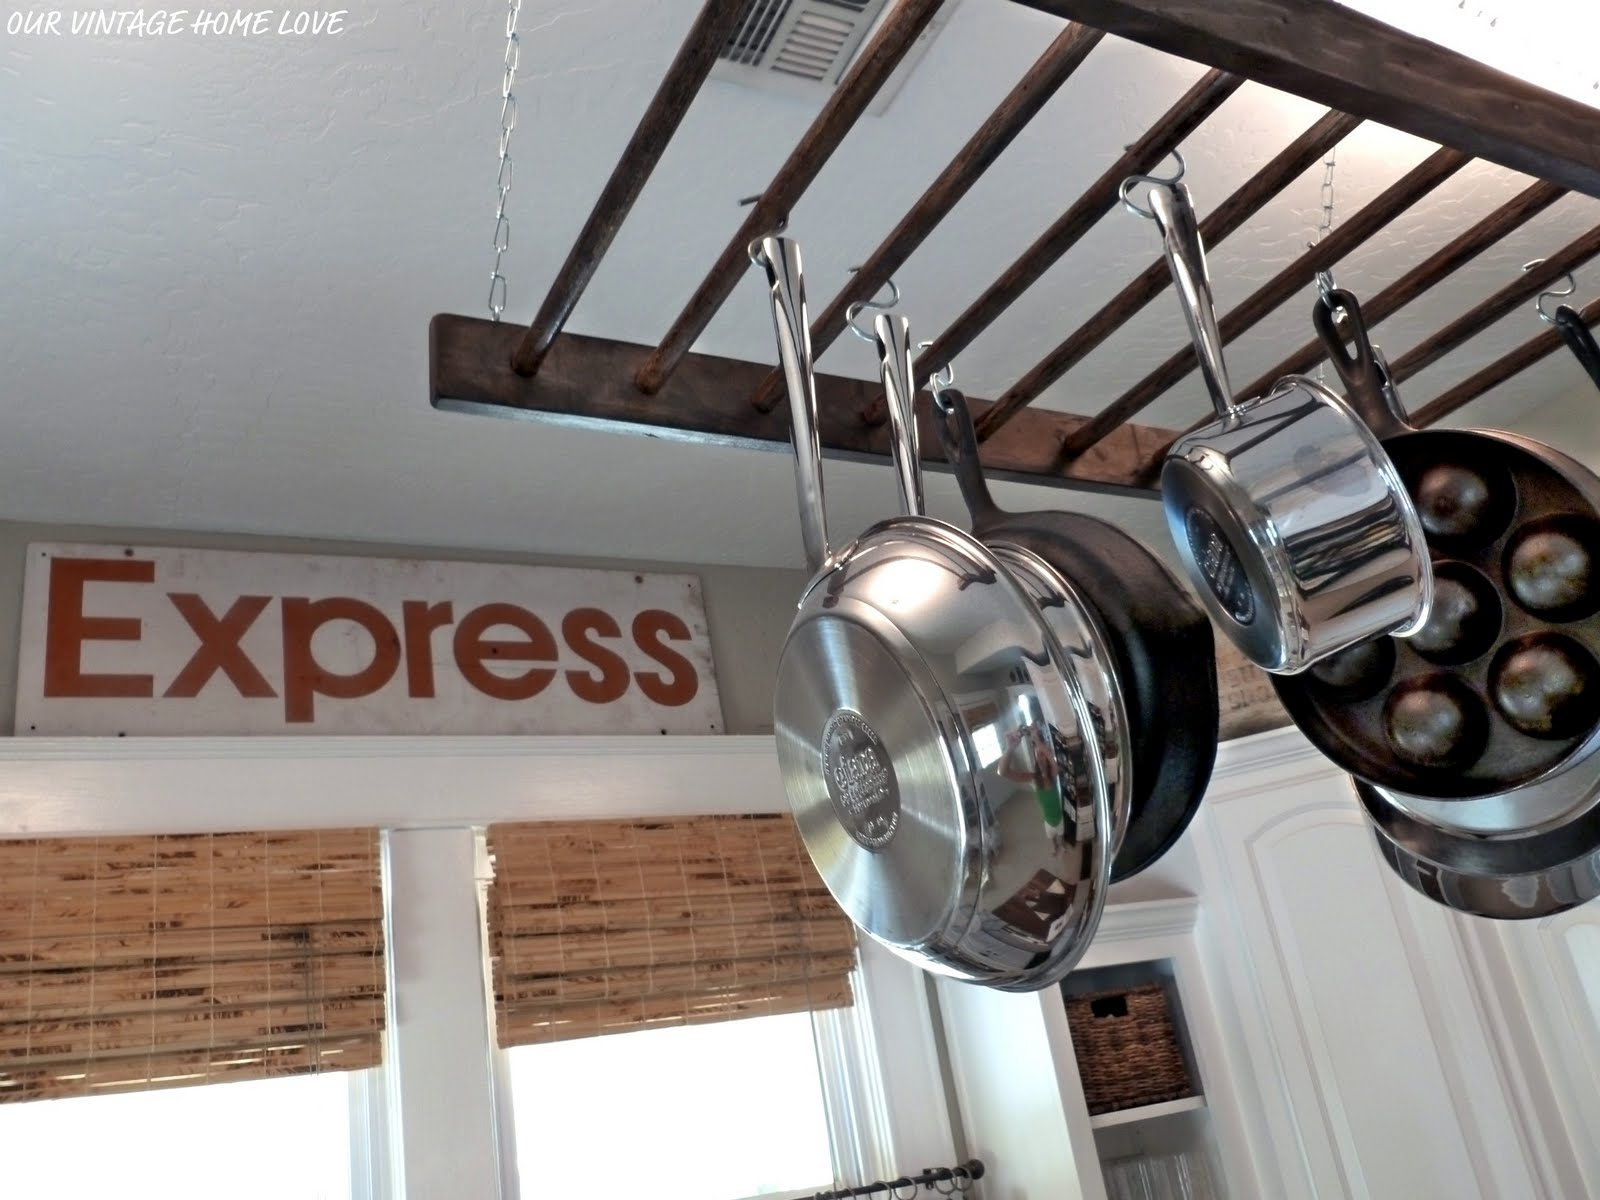 vintage home love: Express Sign and a Pot Rack